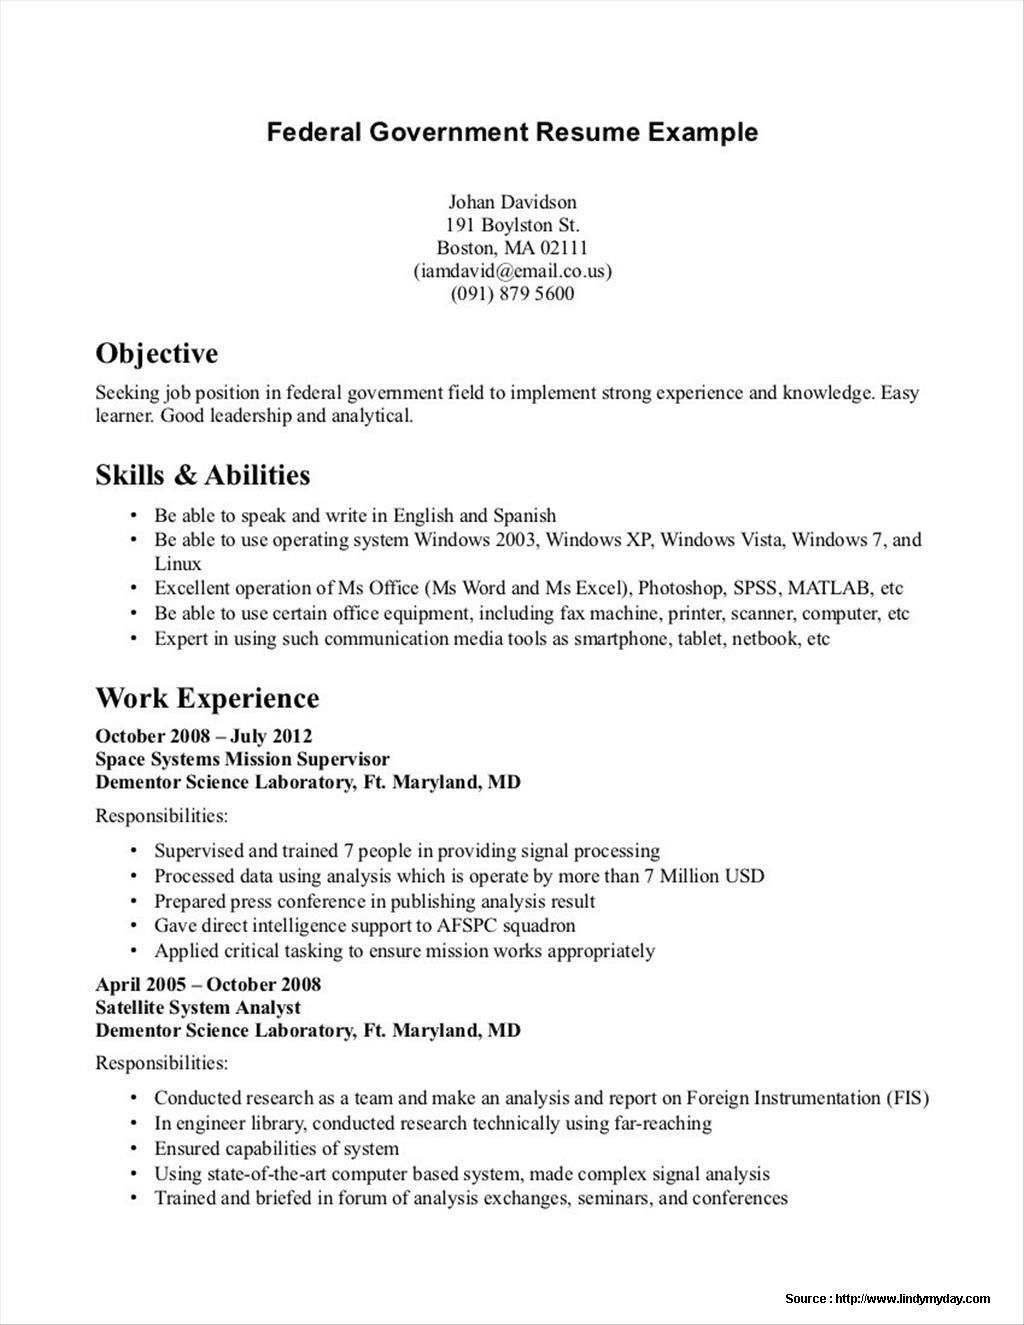 Resume Templates For Windows Xp #resume #ResumeTemplates ...